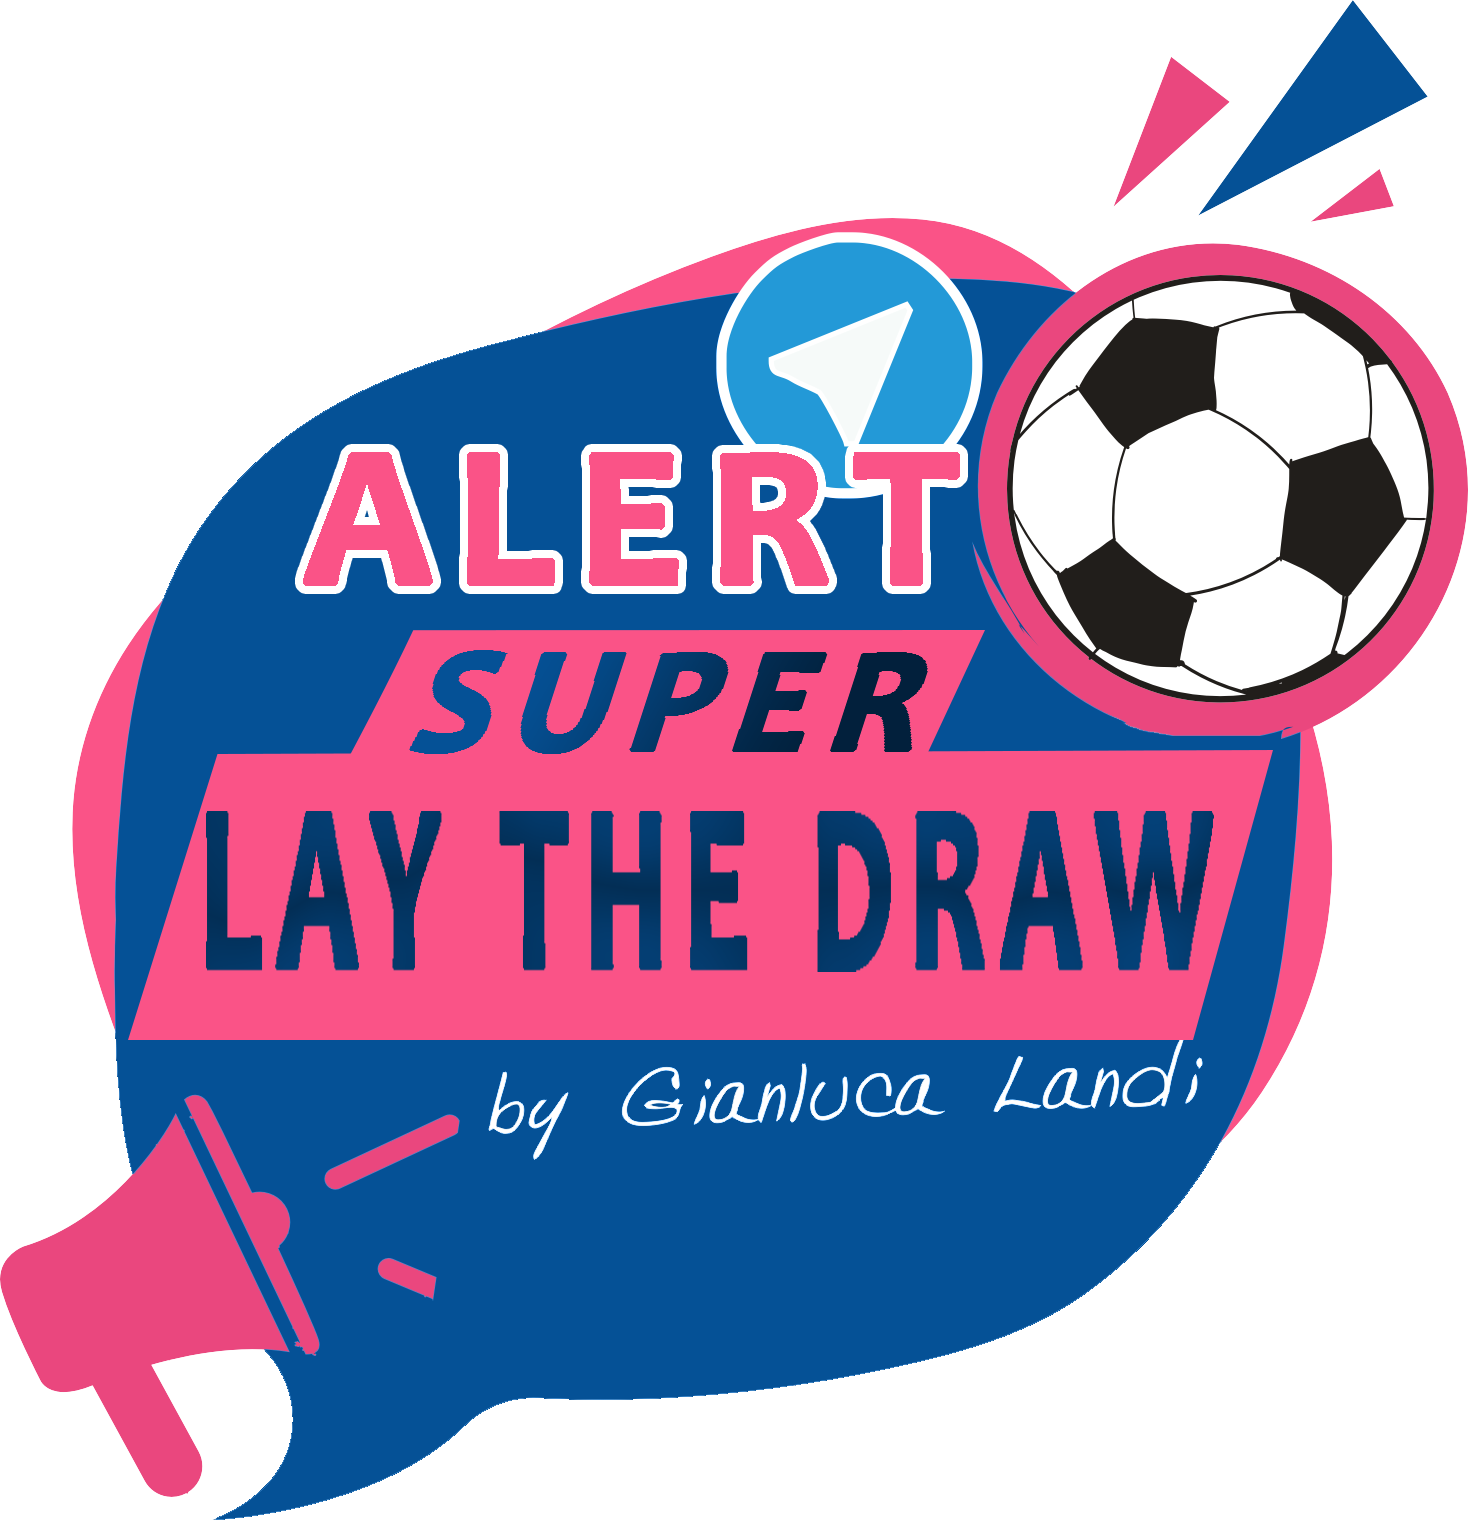 Alert Super Lay the Draw by Gianluca Landi